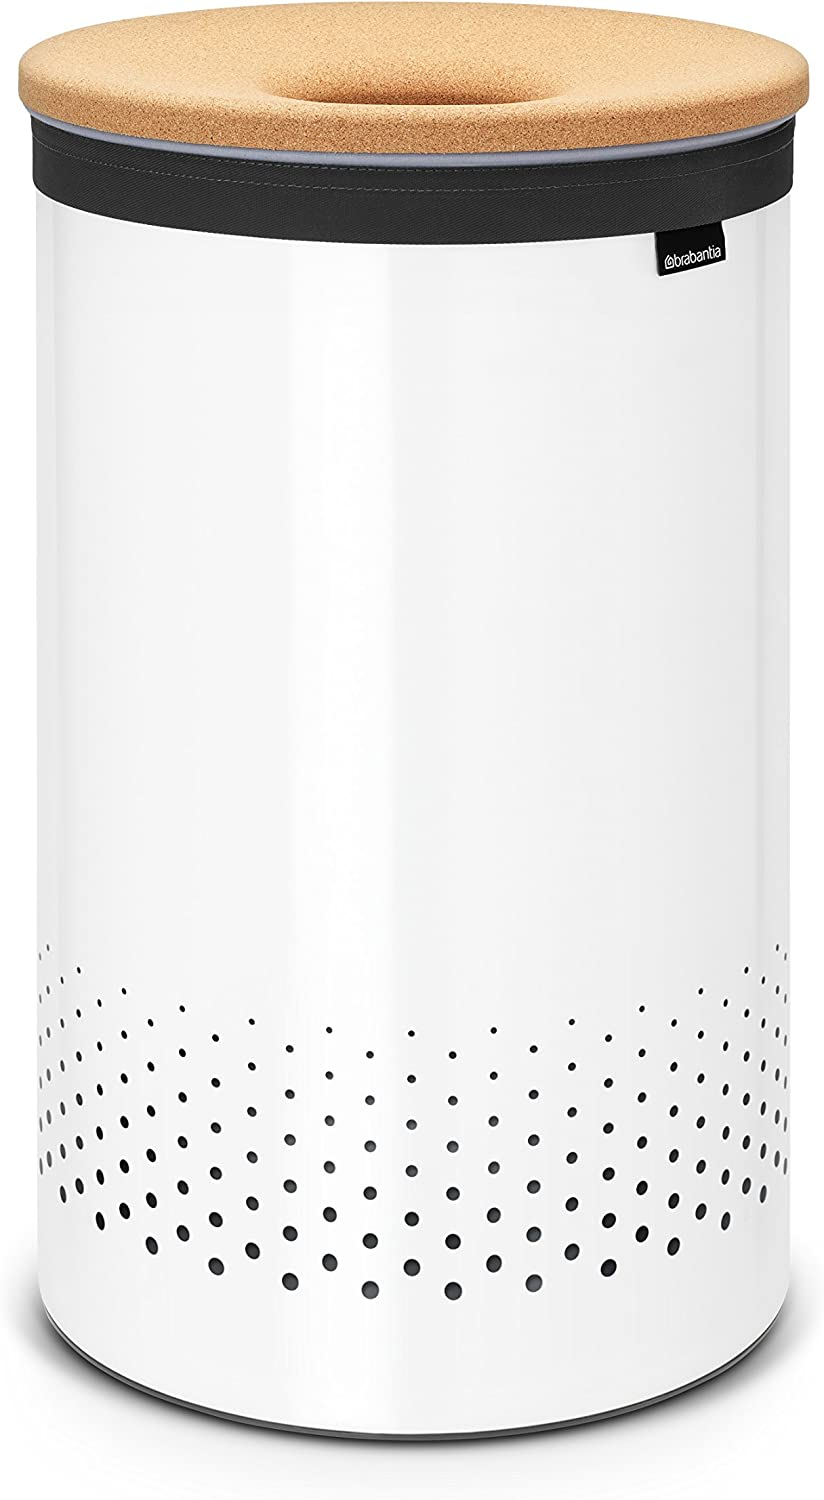 Brabantia Large Laundry Bin with Cork Lid, 16 Gallon (60L), White